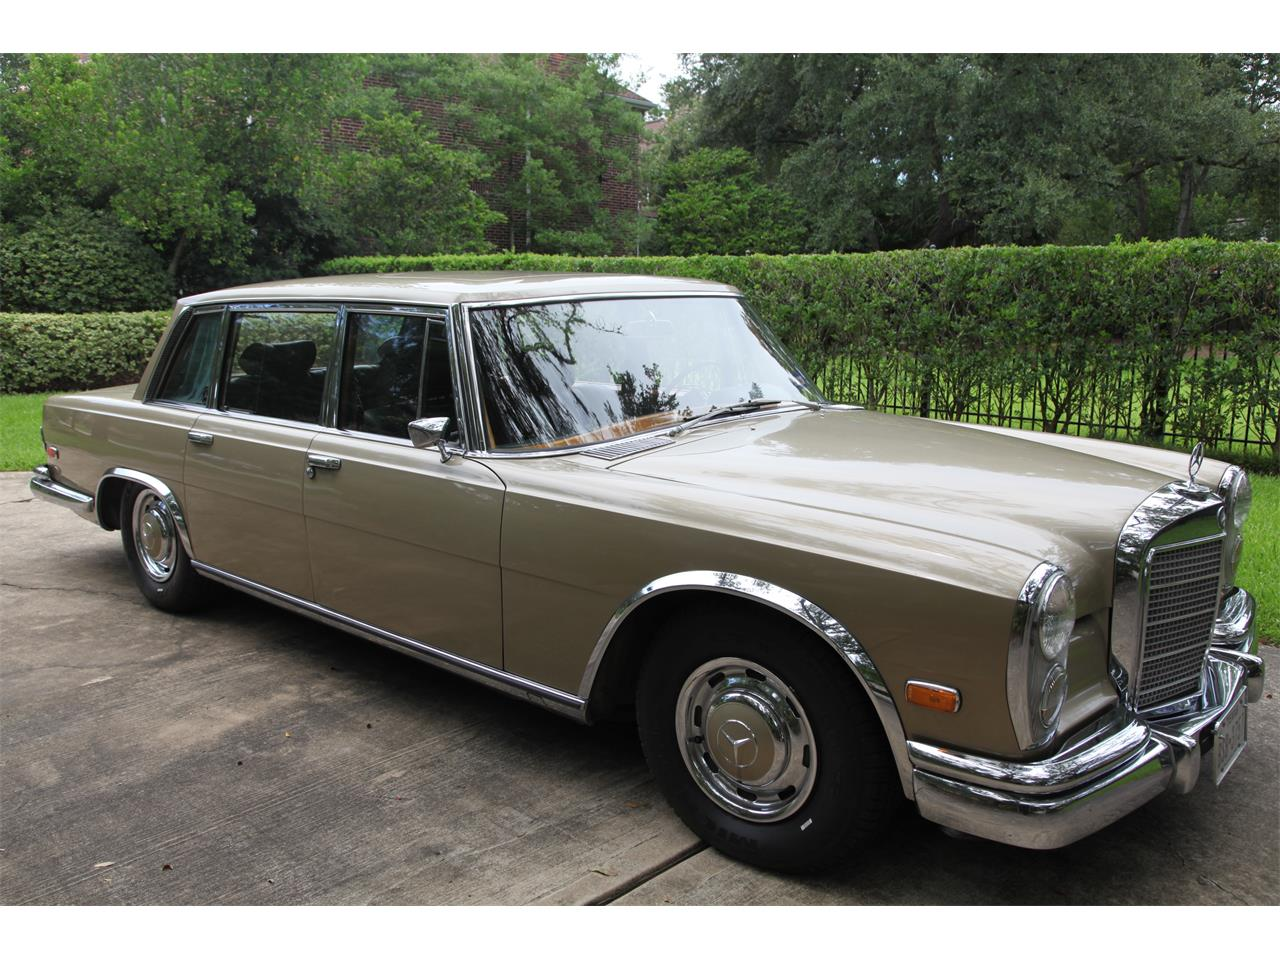 Large Picture Of 1969 Mercedes Benz 600SWB   $89,000.00   LFKD